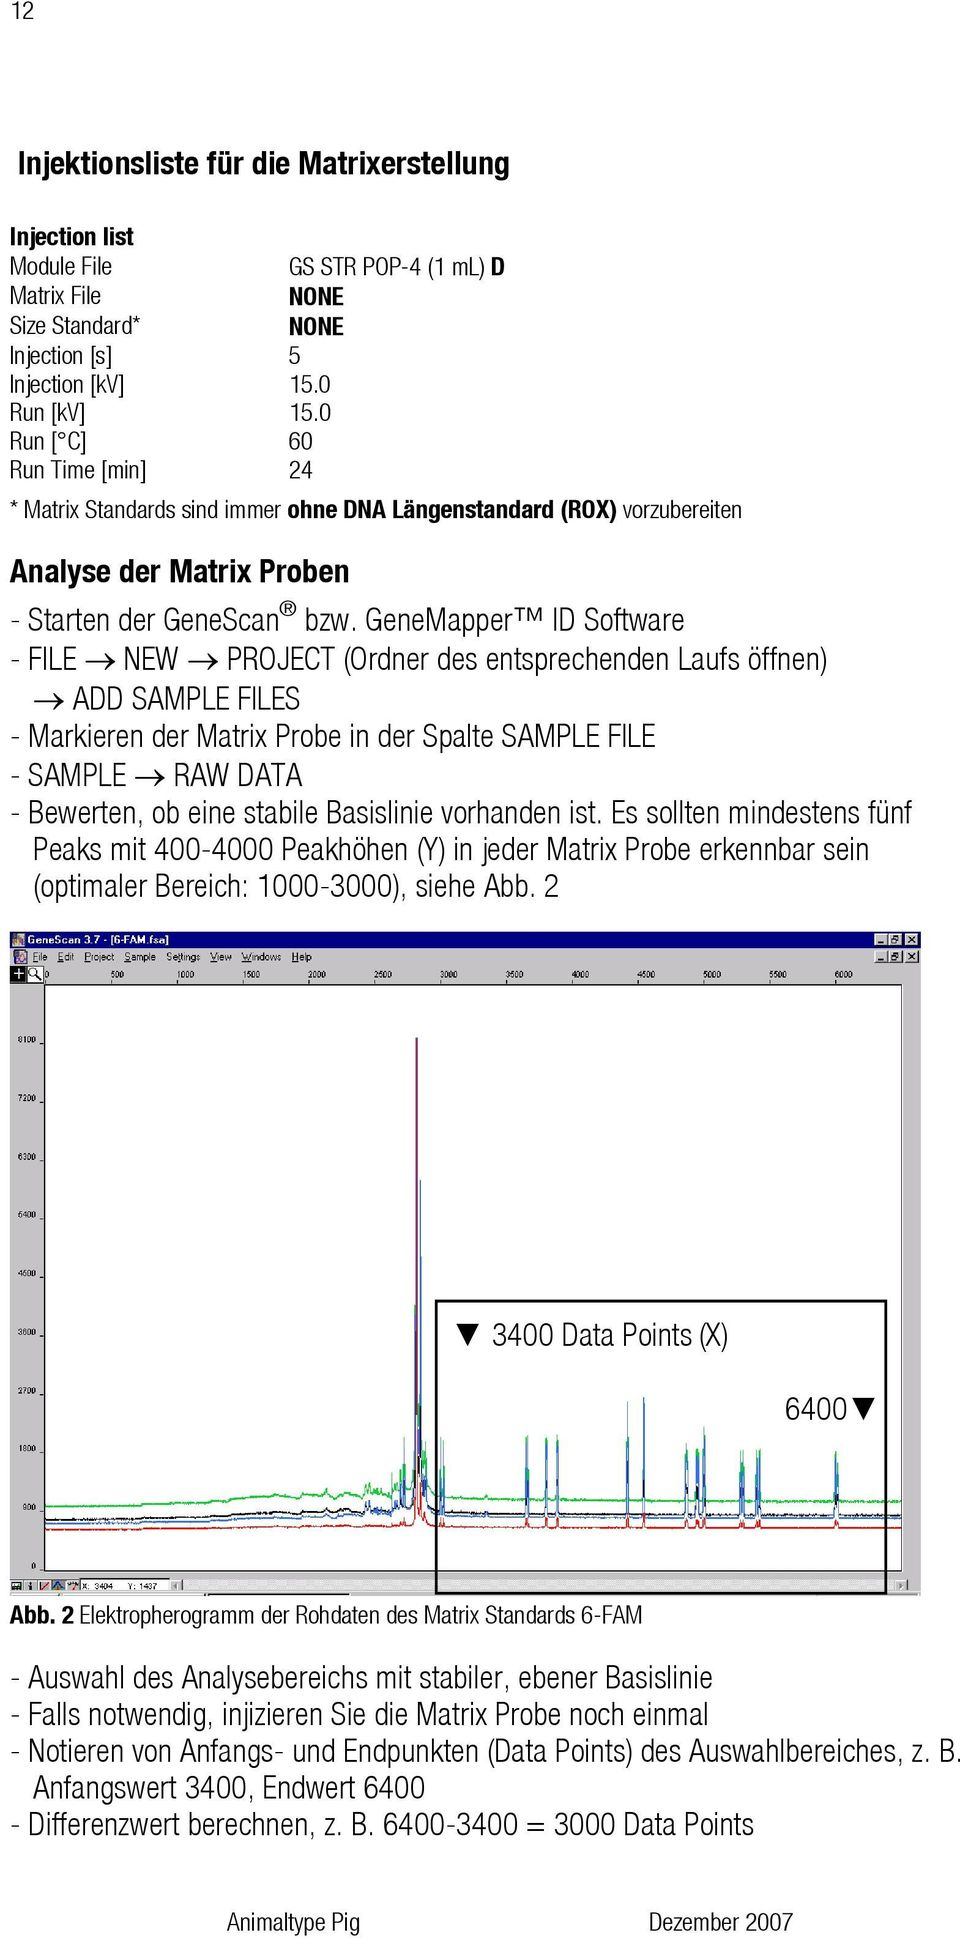 GeneMapper ID Software - FILE NEW PROJECT (Ordner des entsprechenden Laufs öffnen) ADD SAMPLE FILES - Markieren der Matrix Probe in der Spalte SAMPLE FILE - SAMPLE RAW DATA - Bewerten, ob eine